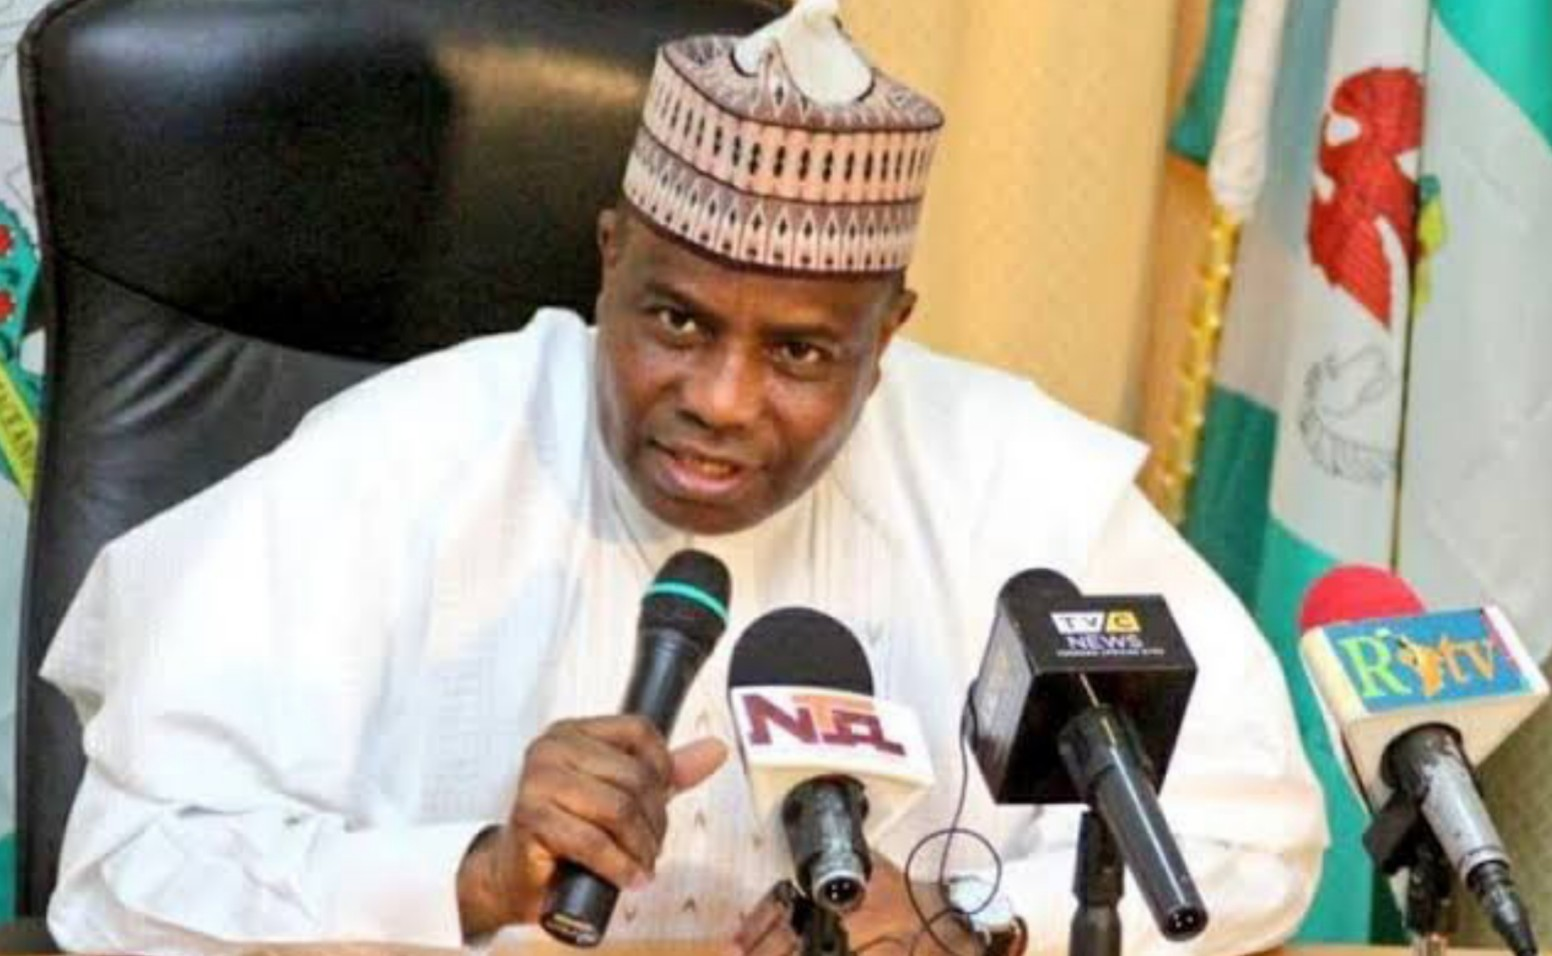 Palliatives distribution in Sokoto delayed at minister's request, says Tambuwal